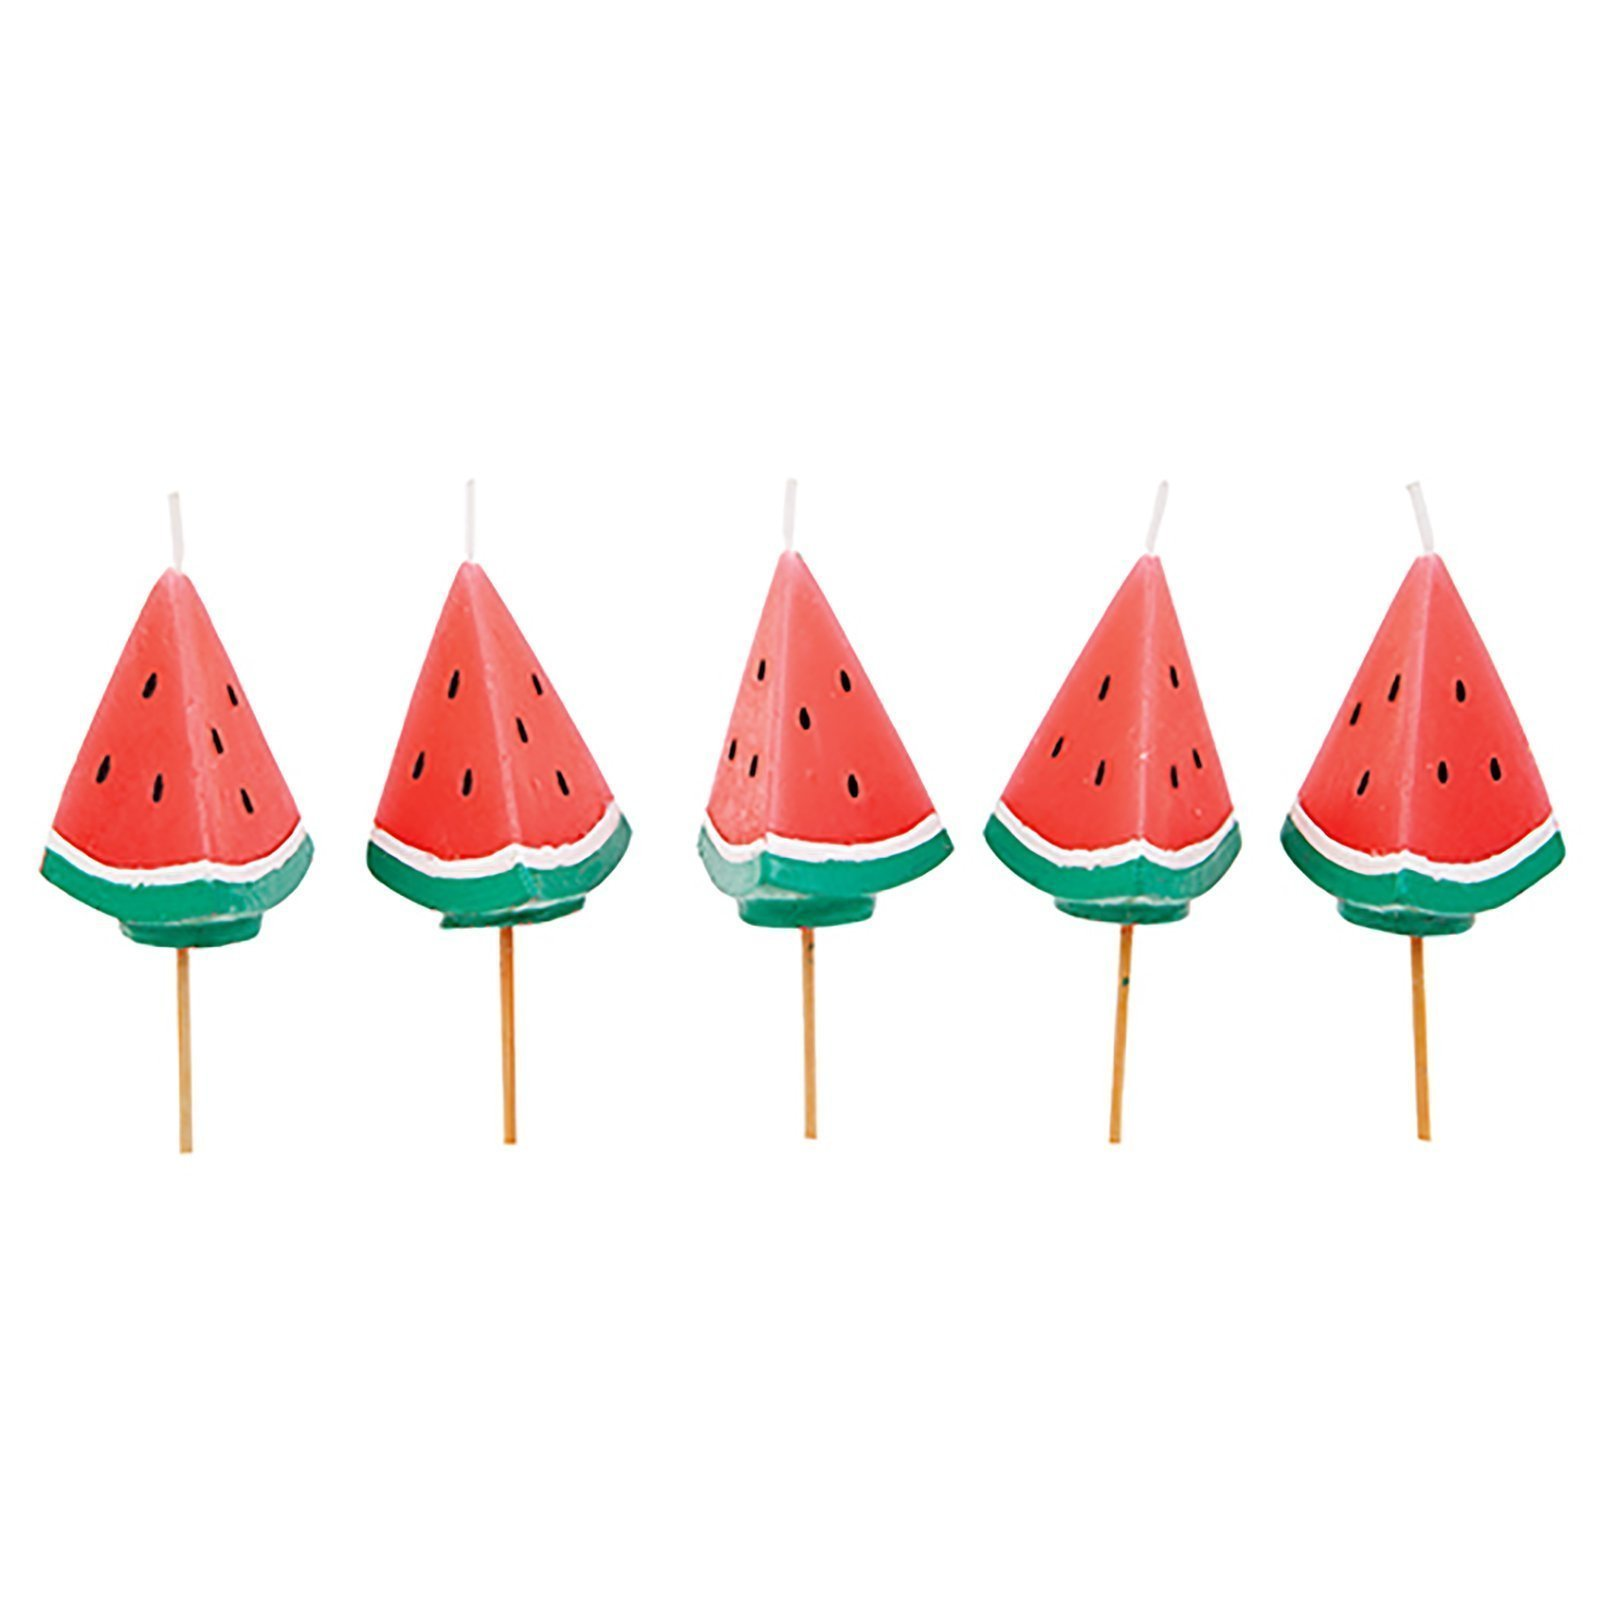 SunnyLIFE Themed Cake Candles in Animal, Plant, and Food Shapes, Set of 5 - Watermelon Red